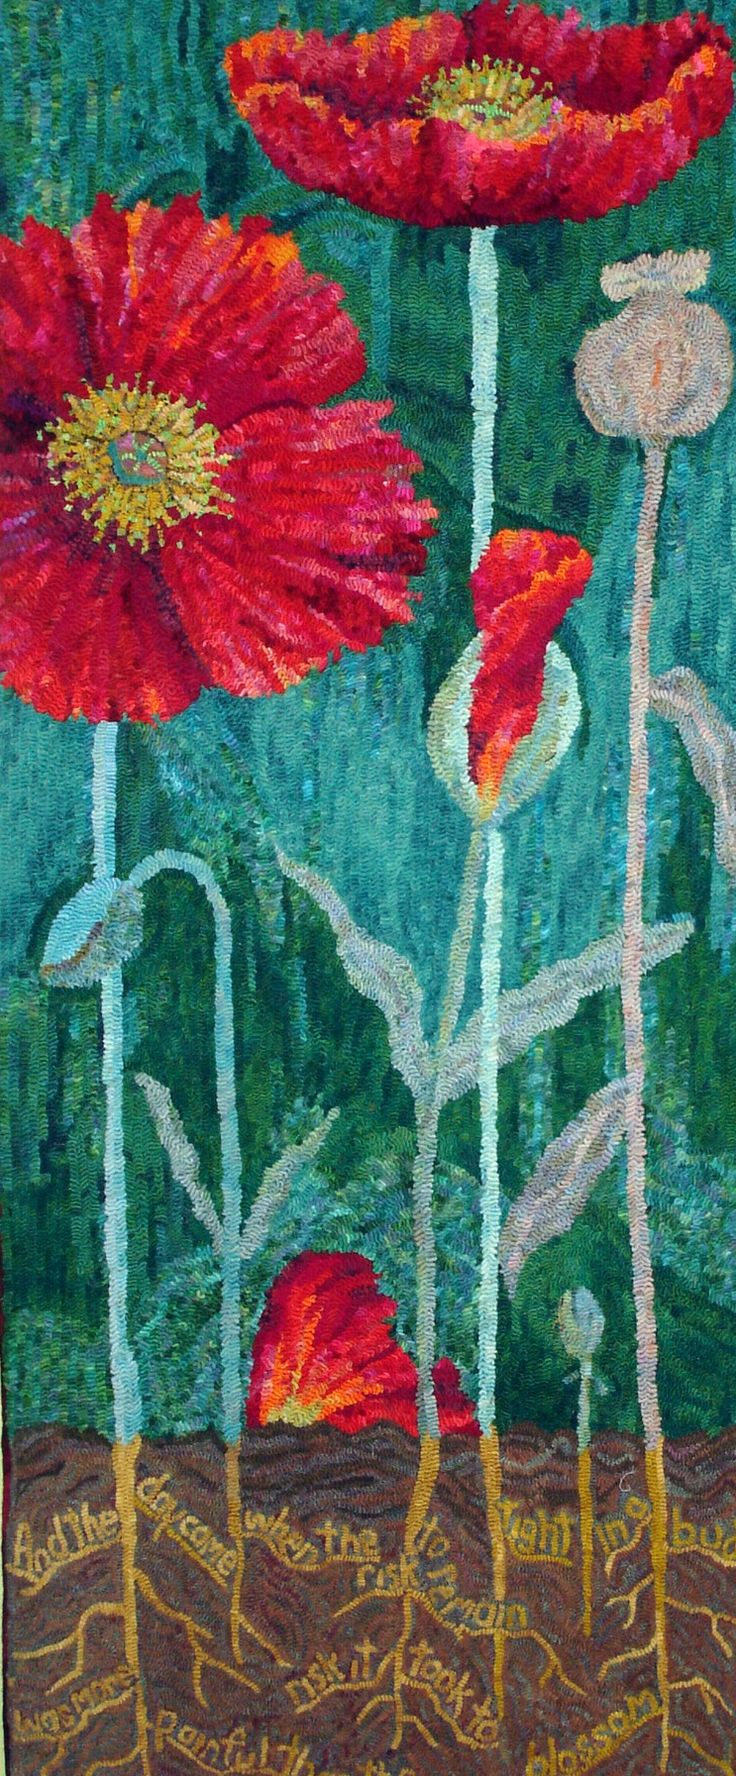 """Hooked rug """"And the Day Came"""" designed and hooked by Wanda Kerr.  Wanda """"the amazing""""...just lovely!"""